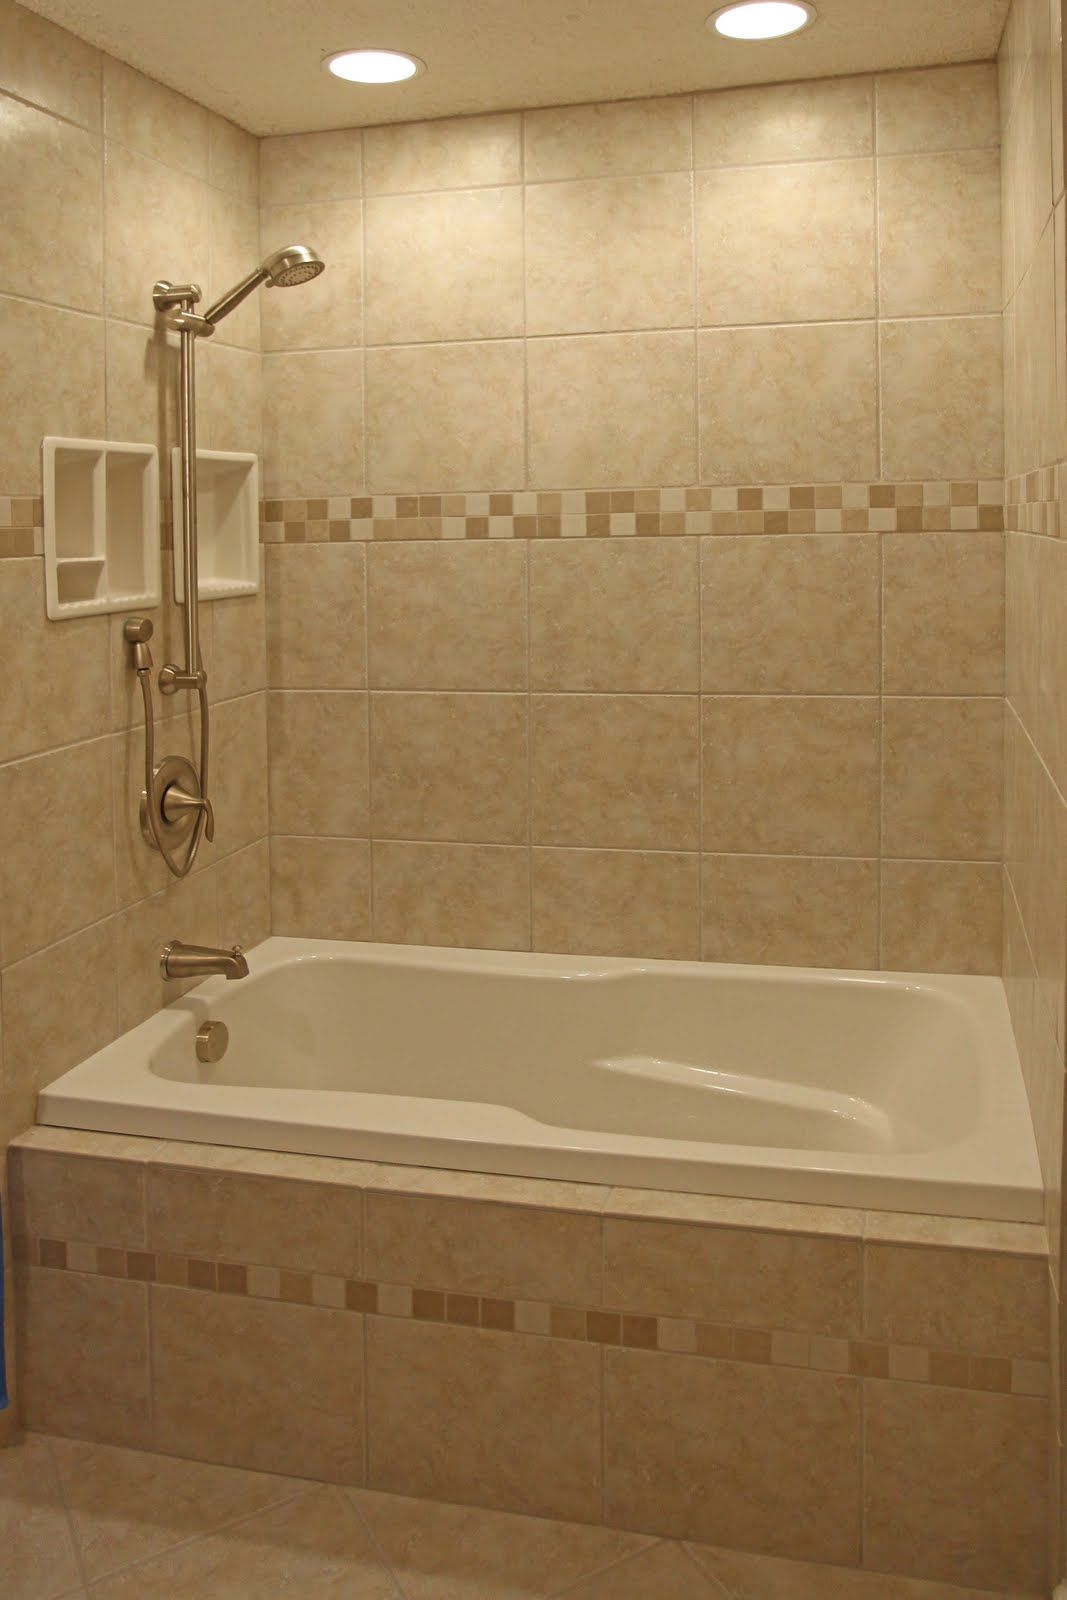 shower and bath remodel bathroom shower design ideas ceramic tile bathroom shower design - Bathroom Tile Ideas For Tub Surround